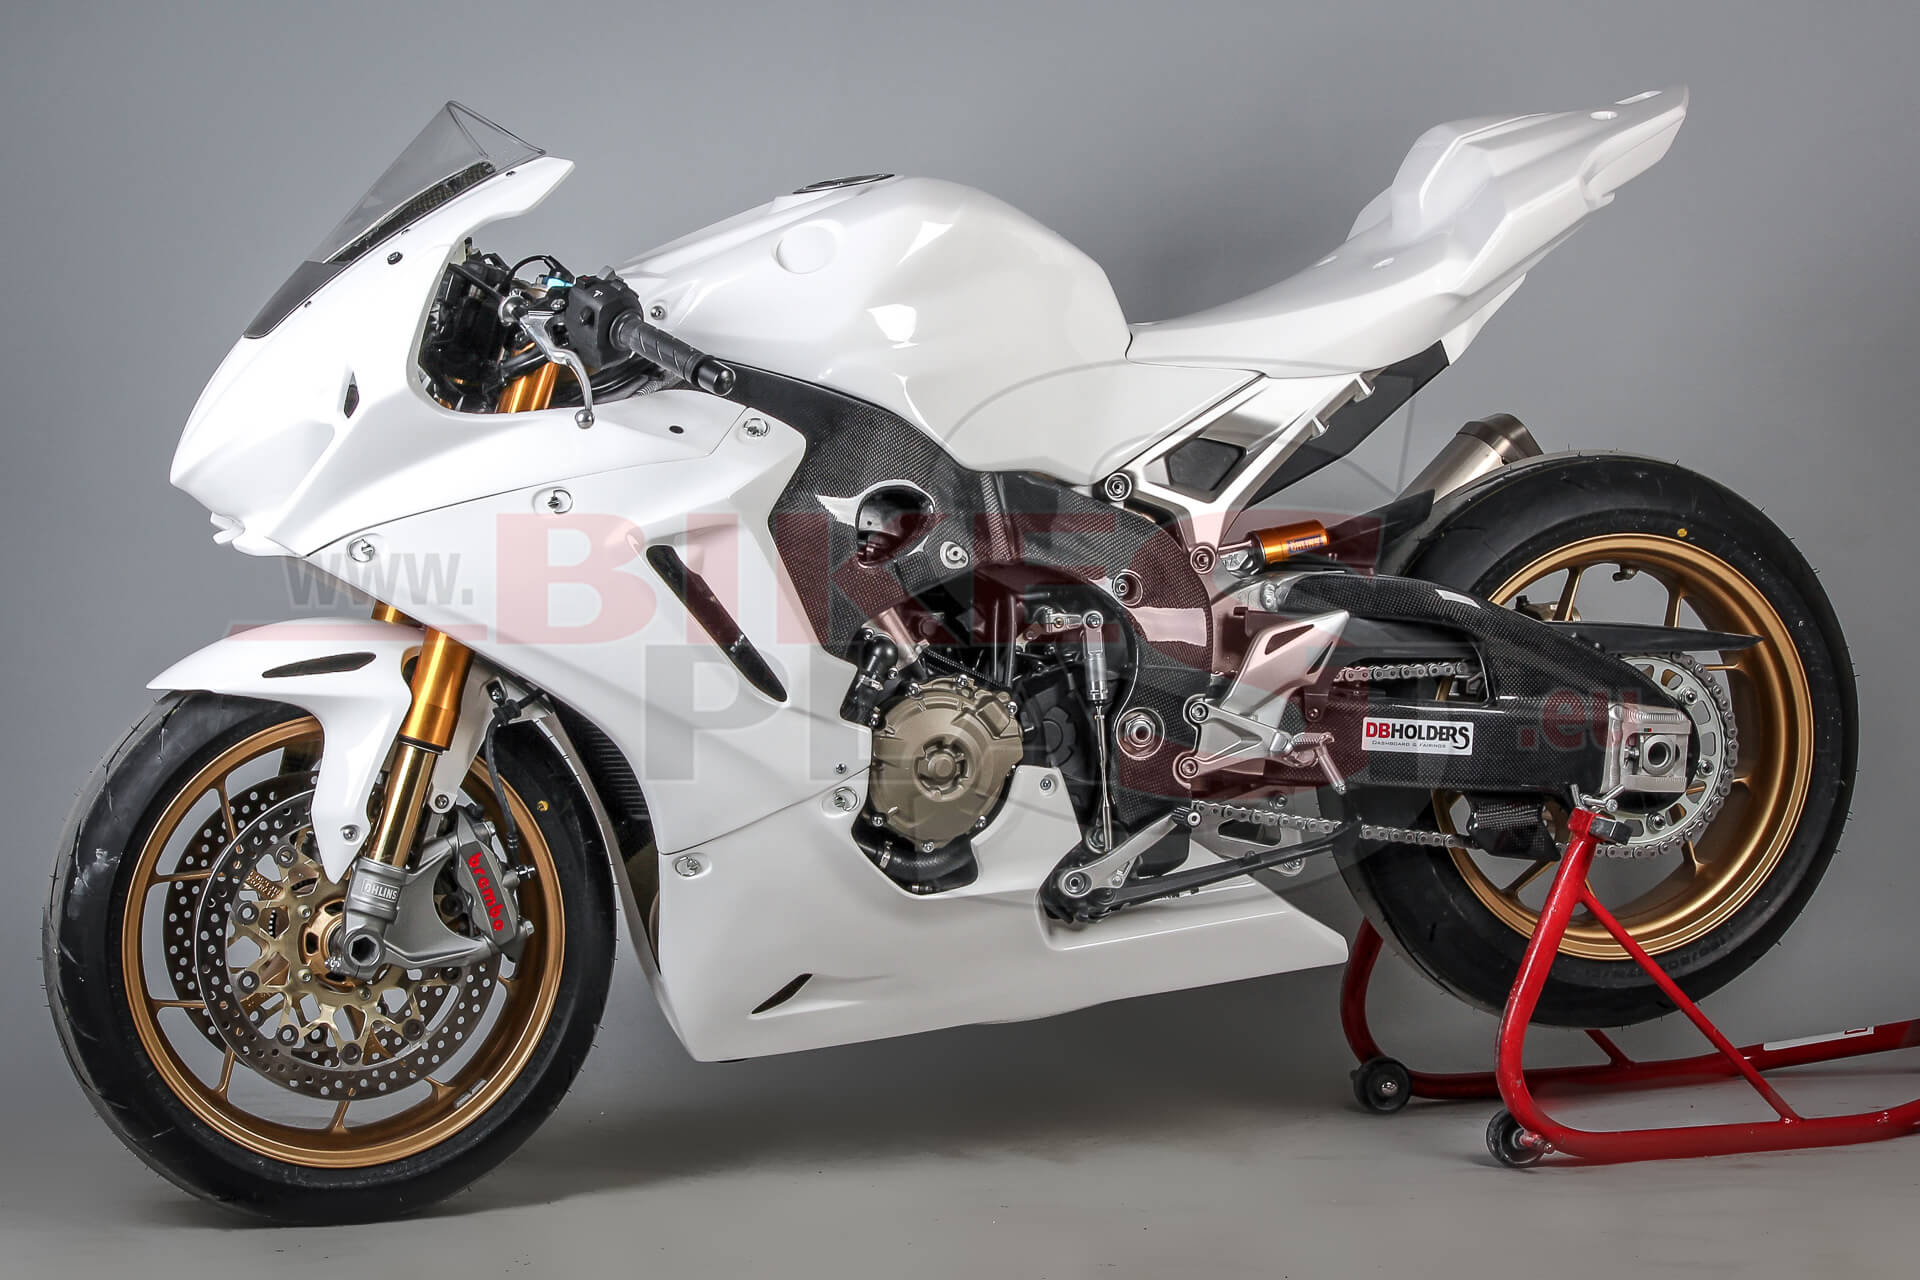 Bikesplast com – Premium motorcycle fairings & bodywork